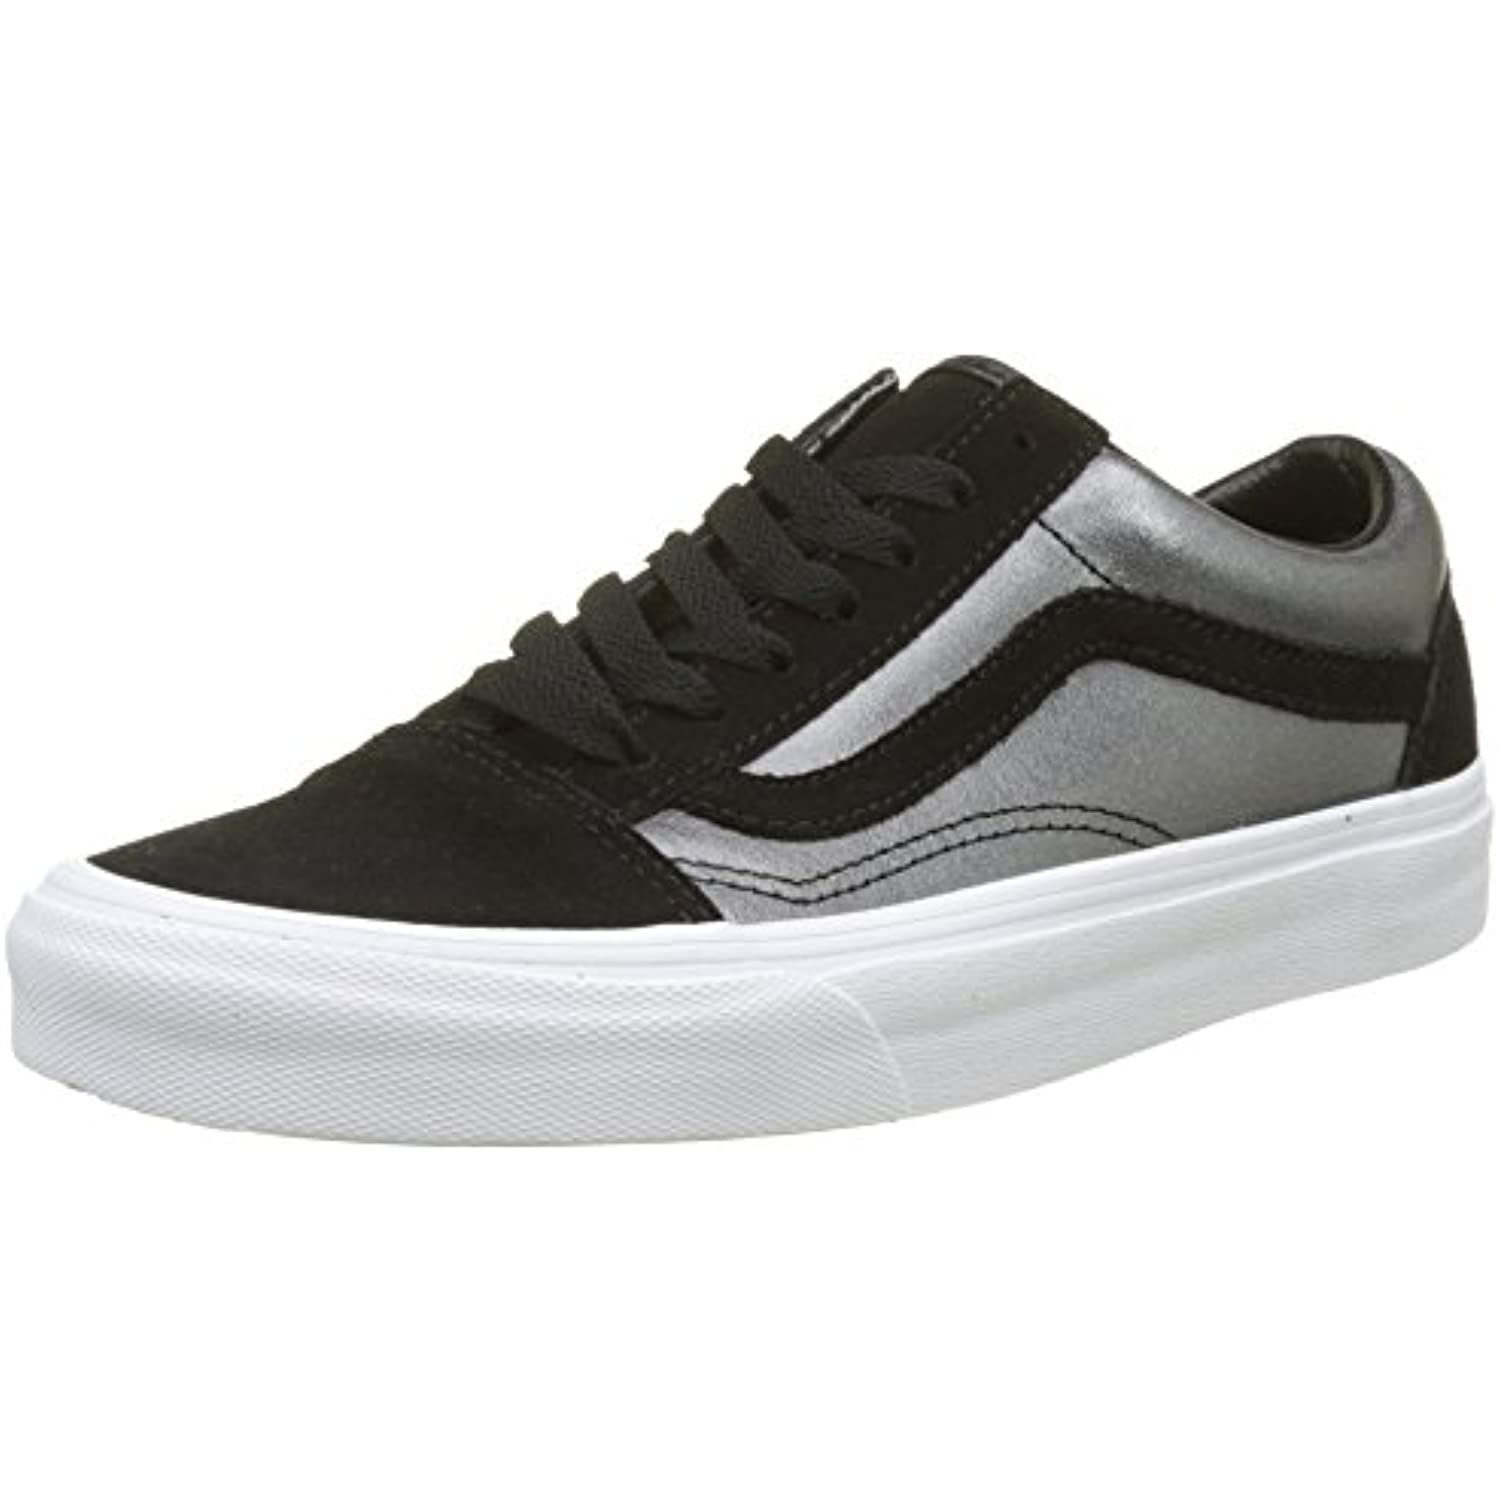 Vans Old Skool Leather, Zapatillas para Mujer -